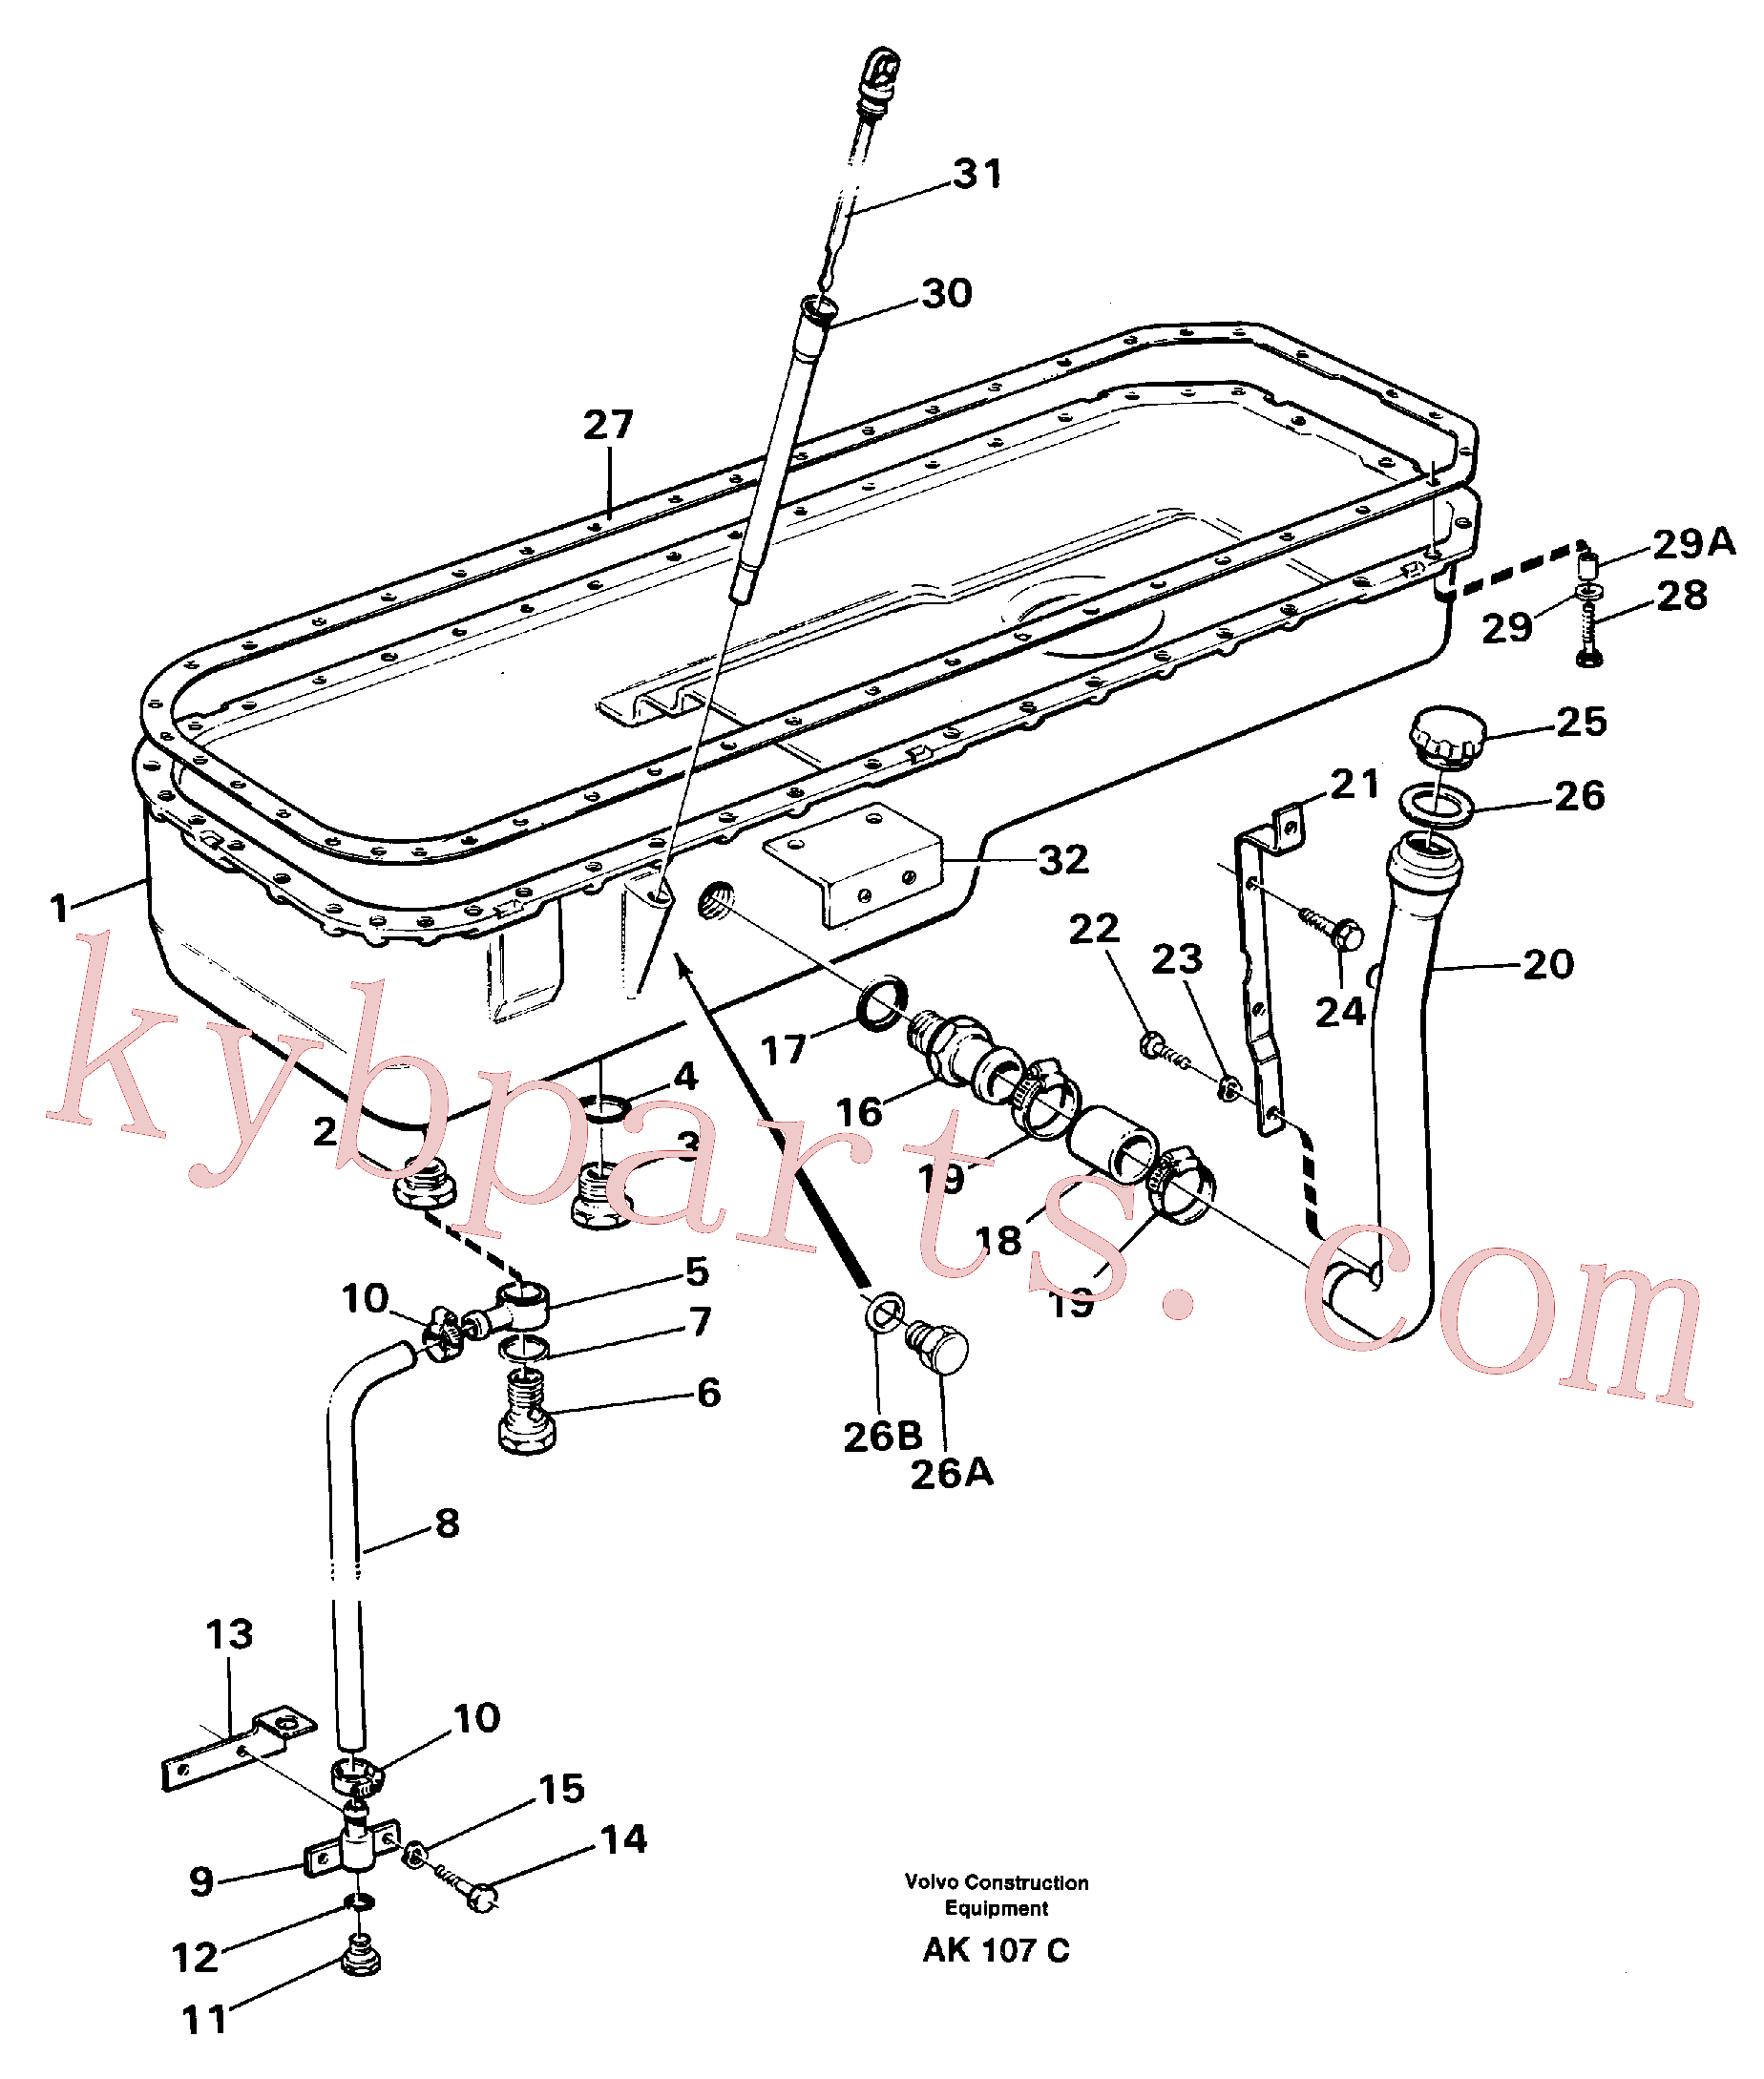 VOE955527 for Volvo Oil sump(AK107C assembly)